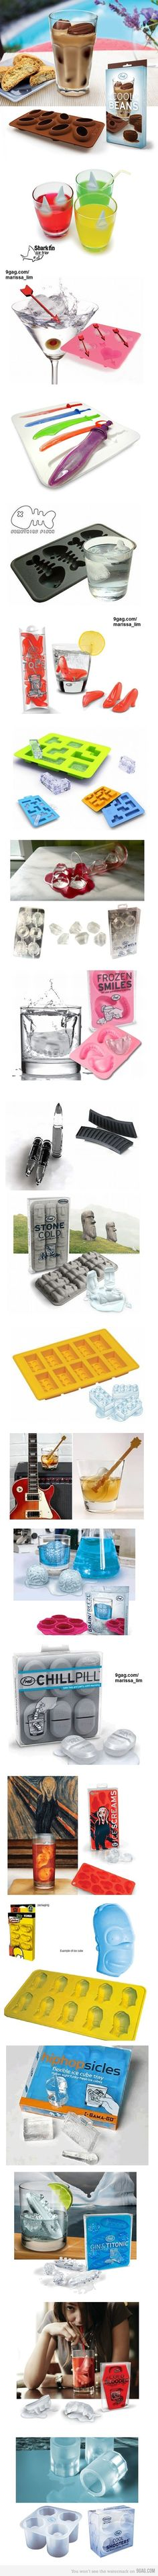 Awesome icecubes!